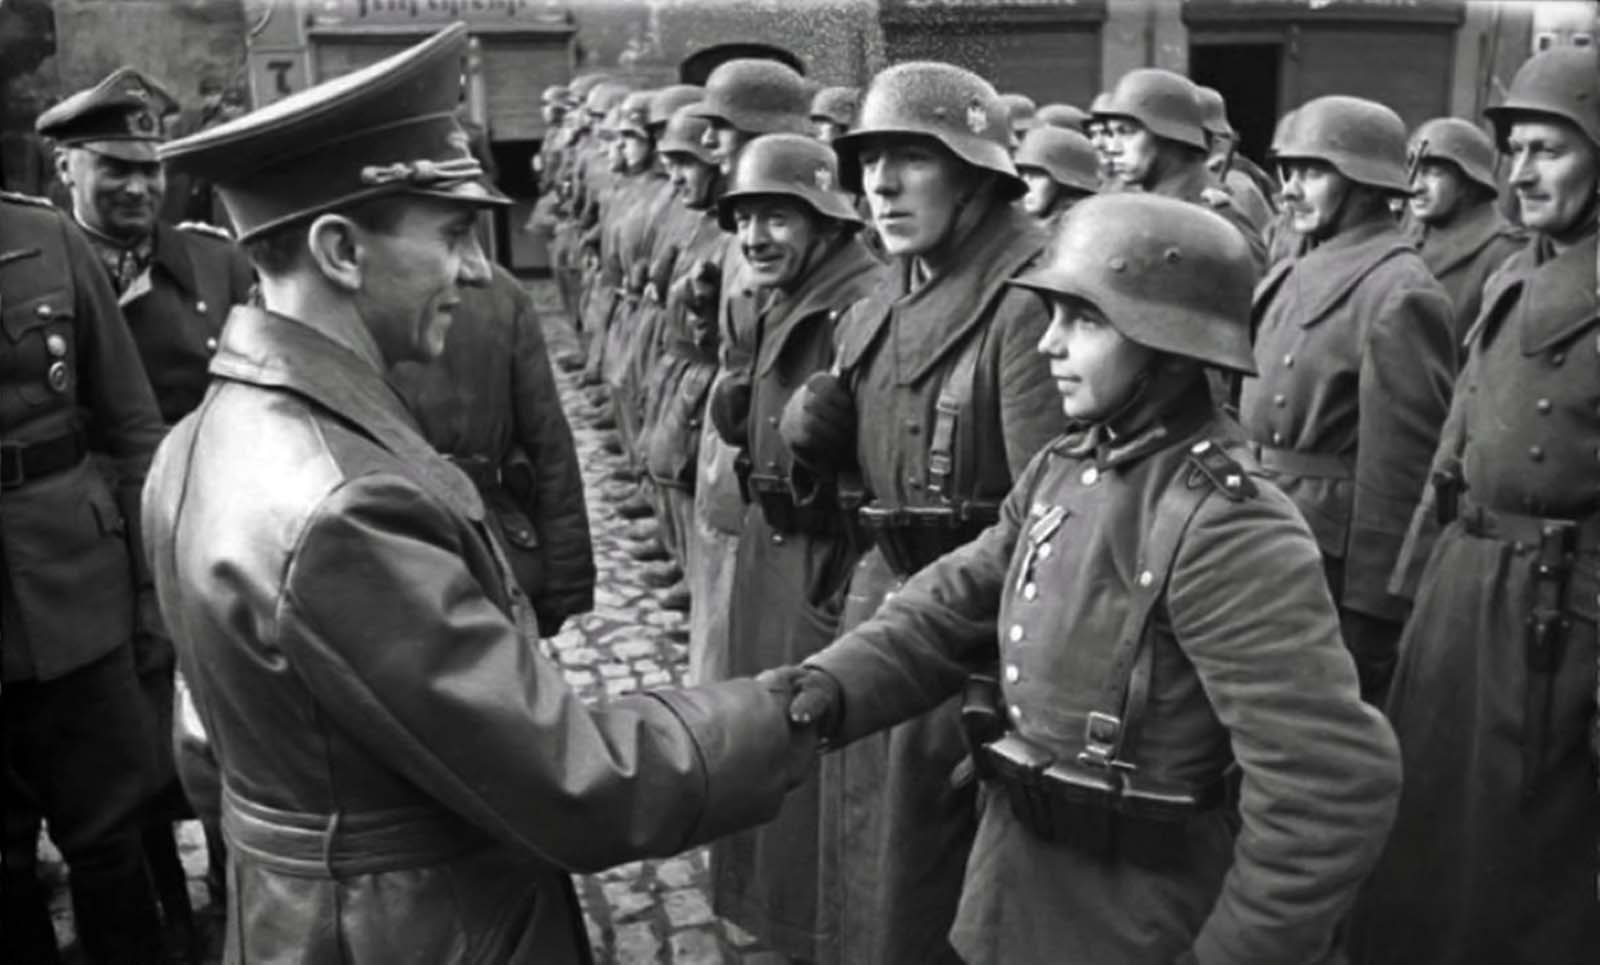 Joseph Goebbels awards the 16-year old Hitler Youth member Willi Hübner the Iron Cross for the defense of Lauban. March 9, 1945.